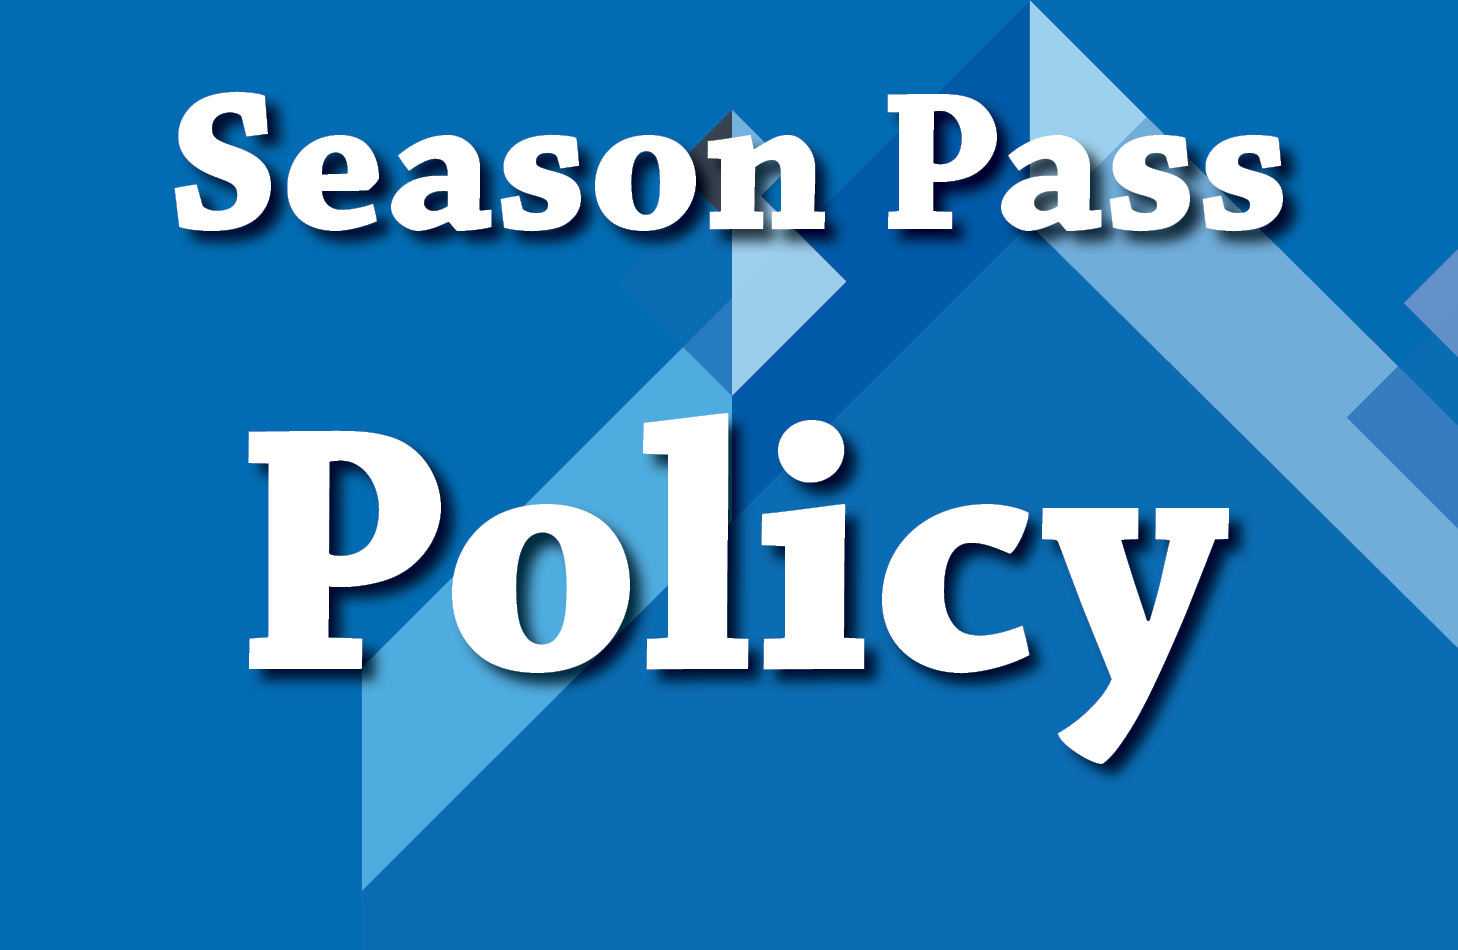 Season Pass Refund Policy